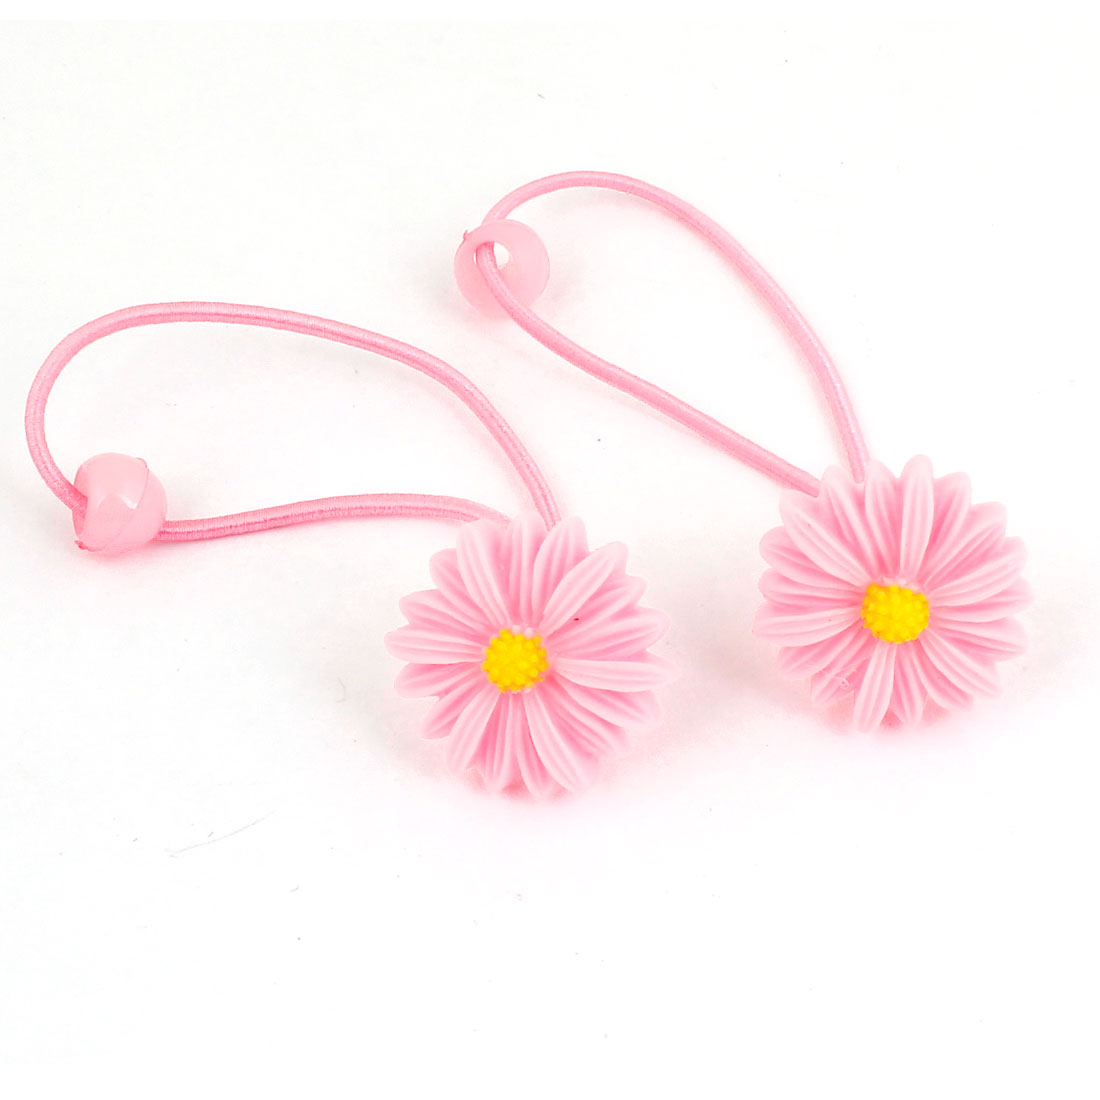 Lady Yellow Pink Flower Daisy Detail Elastic Hair Tie Band Ponytail Holder 2 Pcs